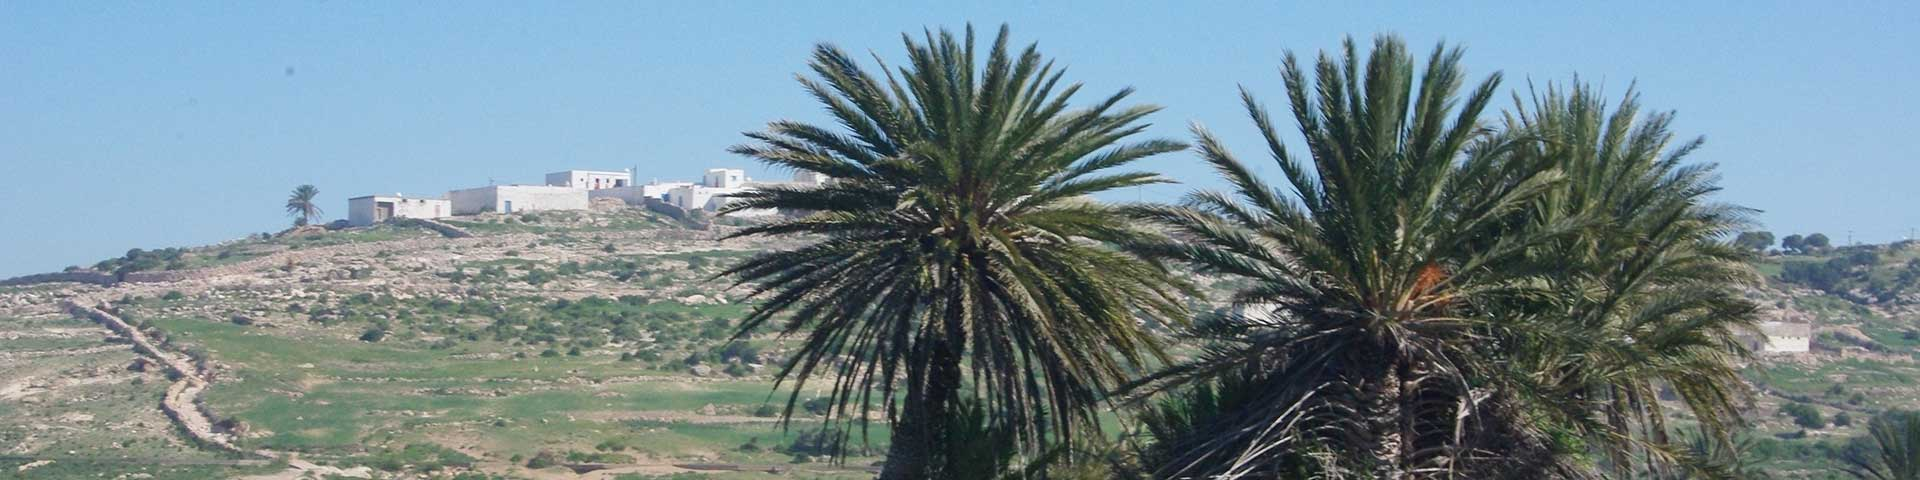 Morrocan Countryside